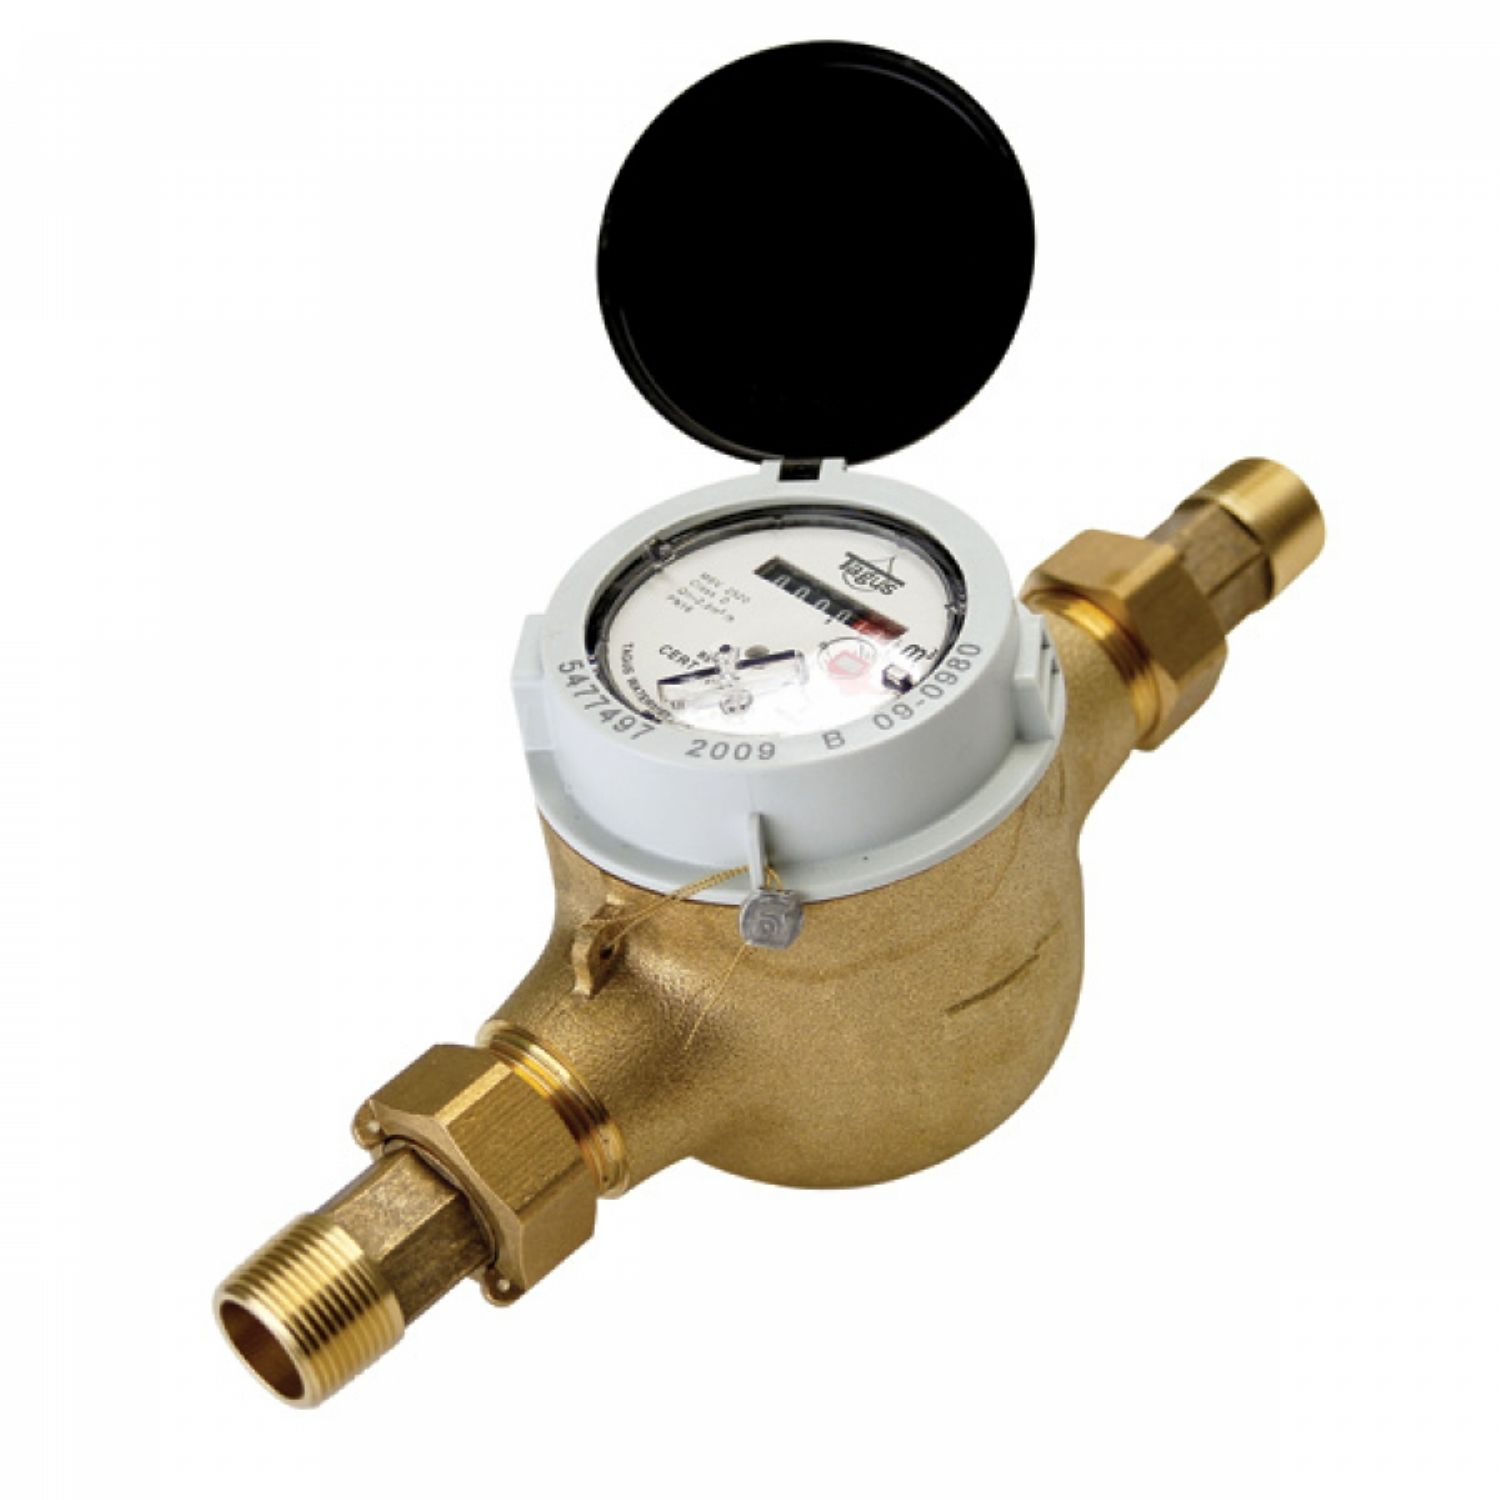 https://www.mepstock.co.uk/admin/images/Cold water meters - non pulsed.jpg